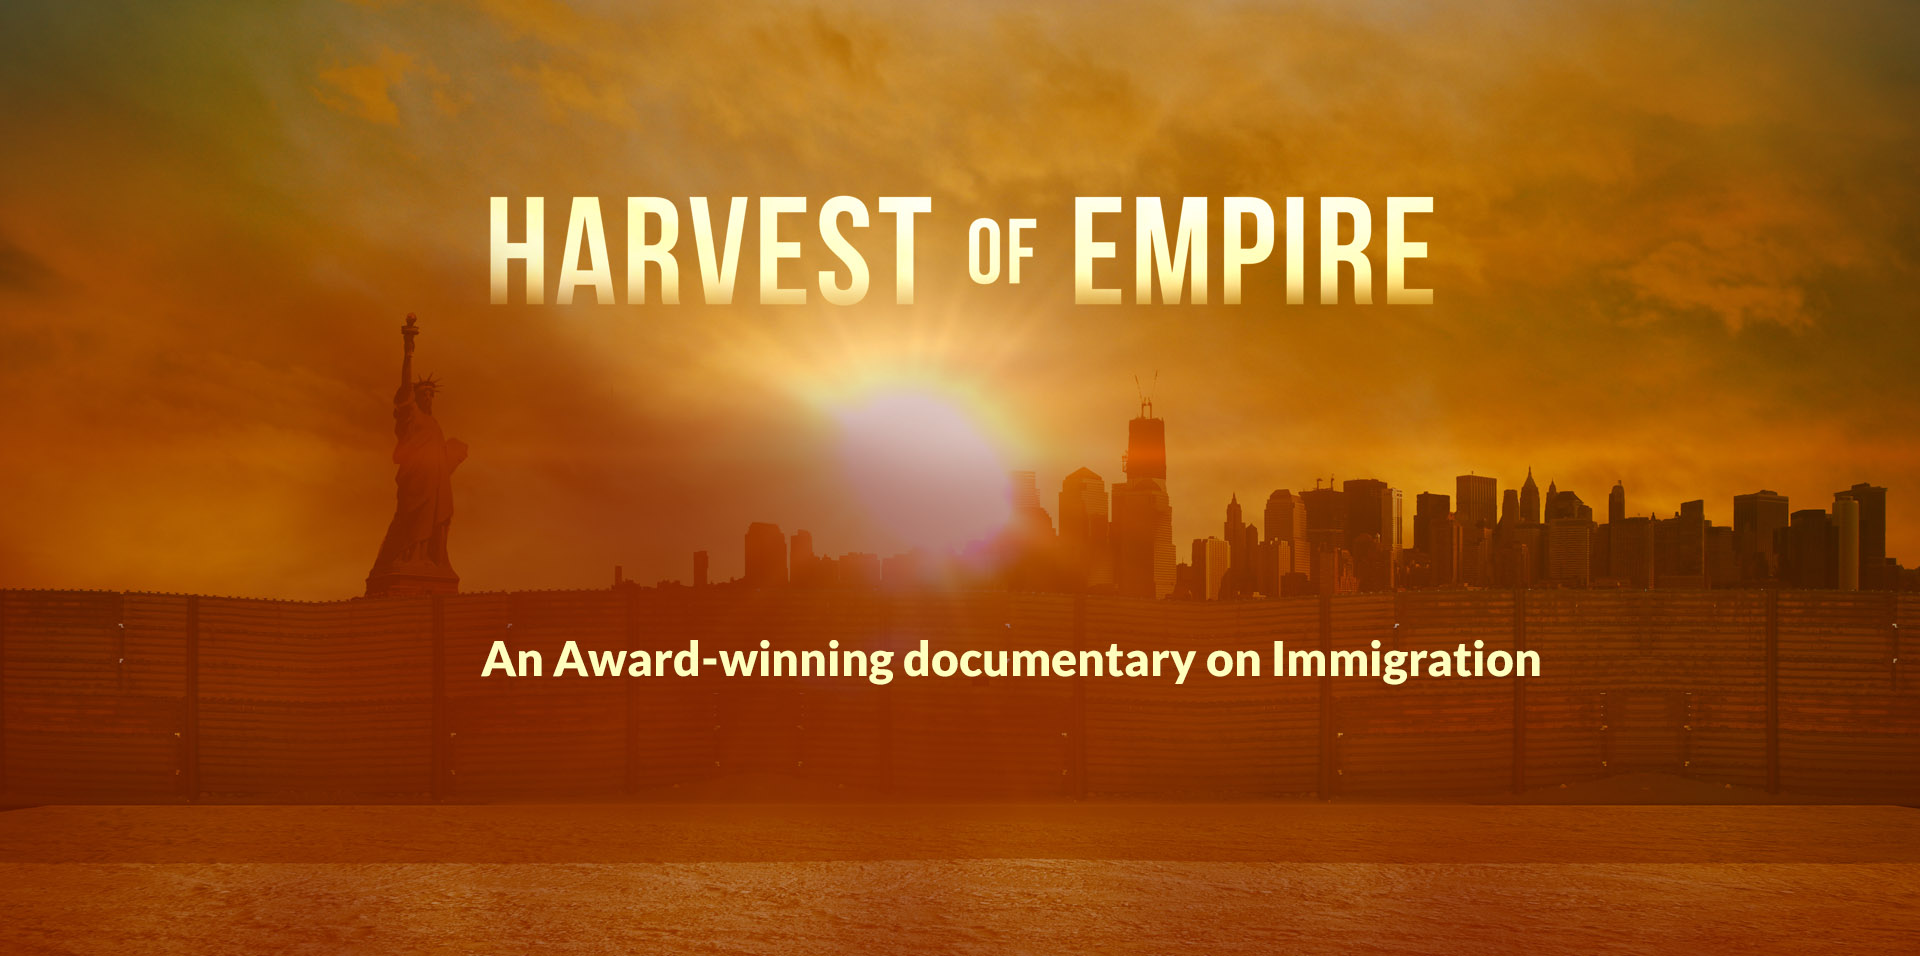 Harvest of Empire - Fourth Friday Film Forum @ Madelyn Helling Library